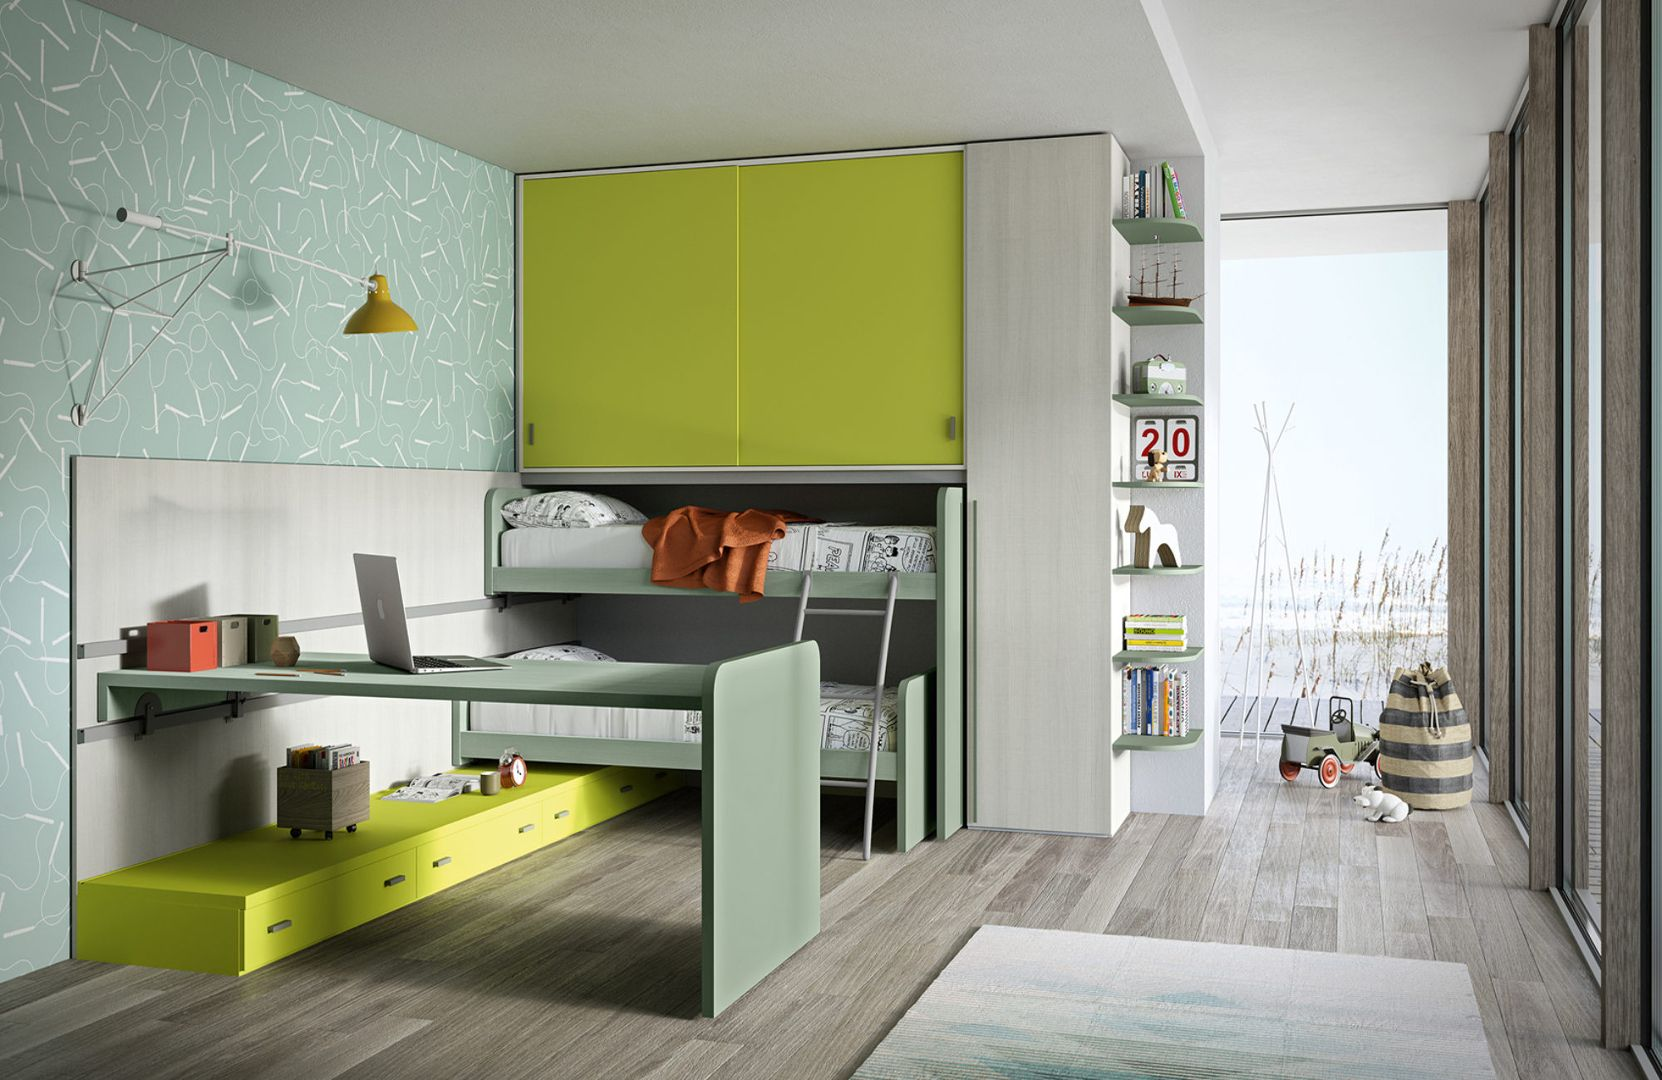 Camerette Siloma ~ Childrens bedroom by siloma #siloma #childrens #bedroom